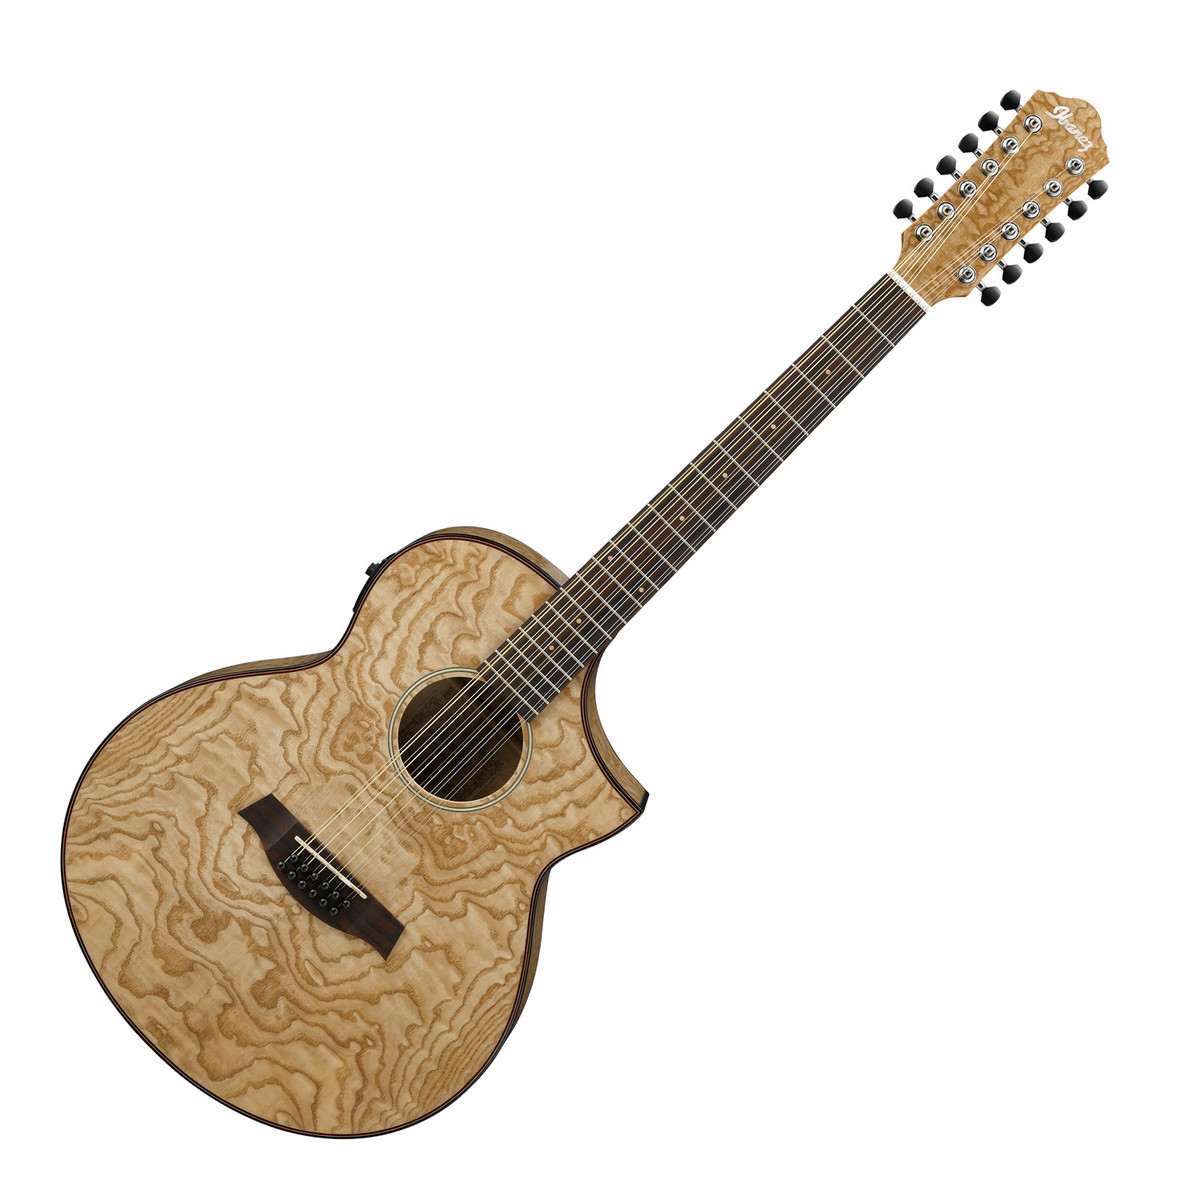 ibanez aew4012as 12 string electro acoustic guitar figured ash at. Black Bedroom Furniture Sets. Home Design Ideas